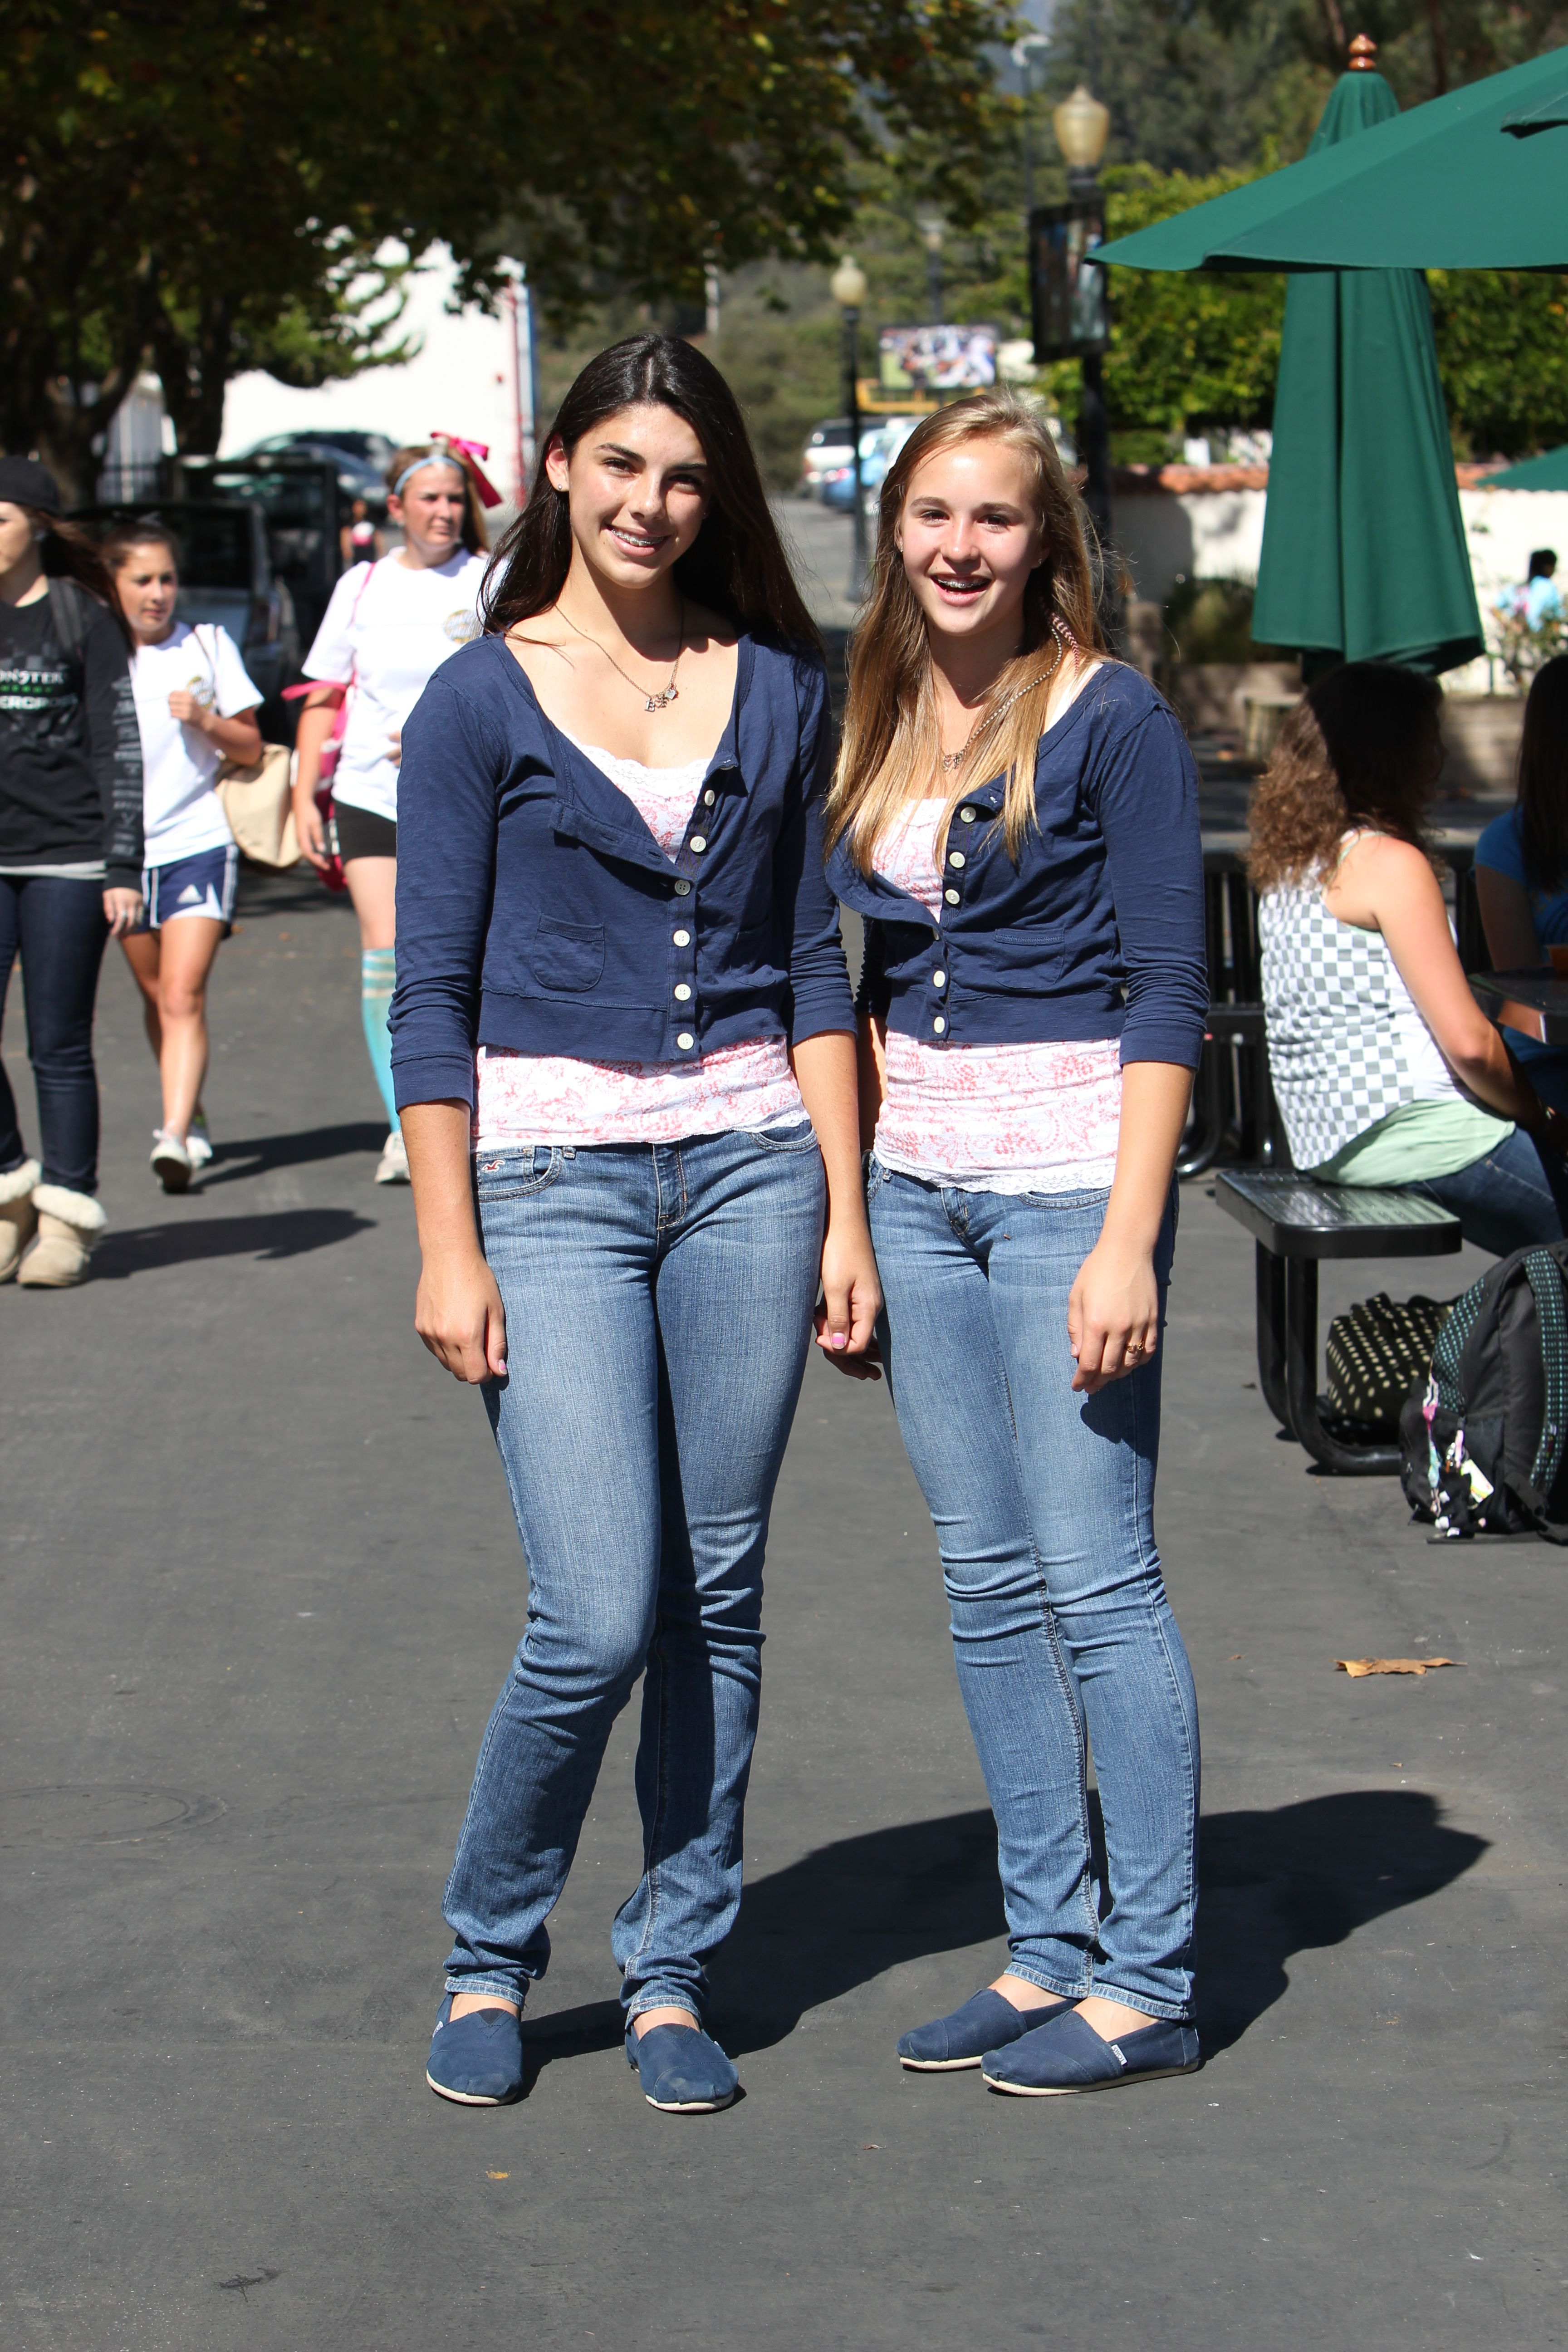 MVCS Twins Day Dress Up. MVCS Twins Day Dress Up   Student Life   Pinterest   Twins and